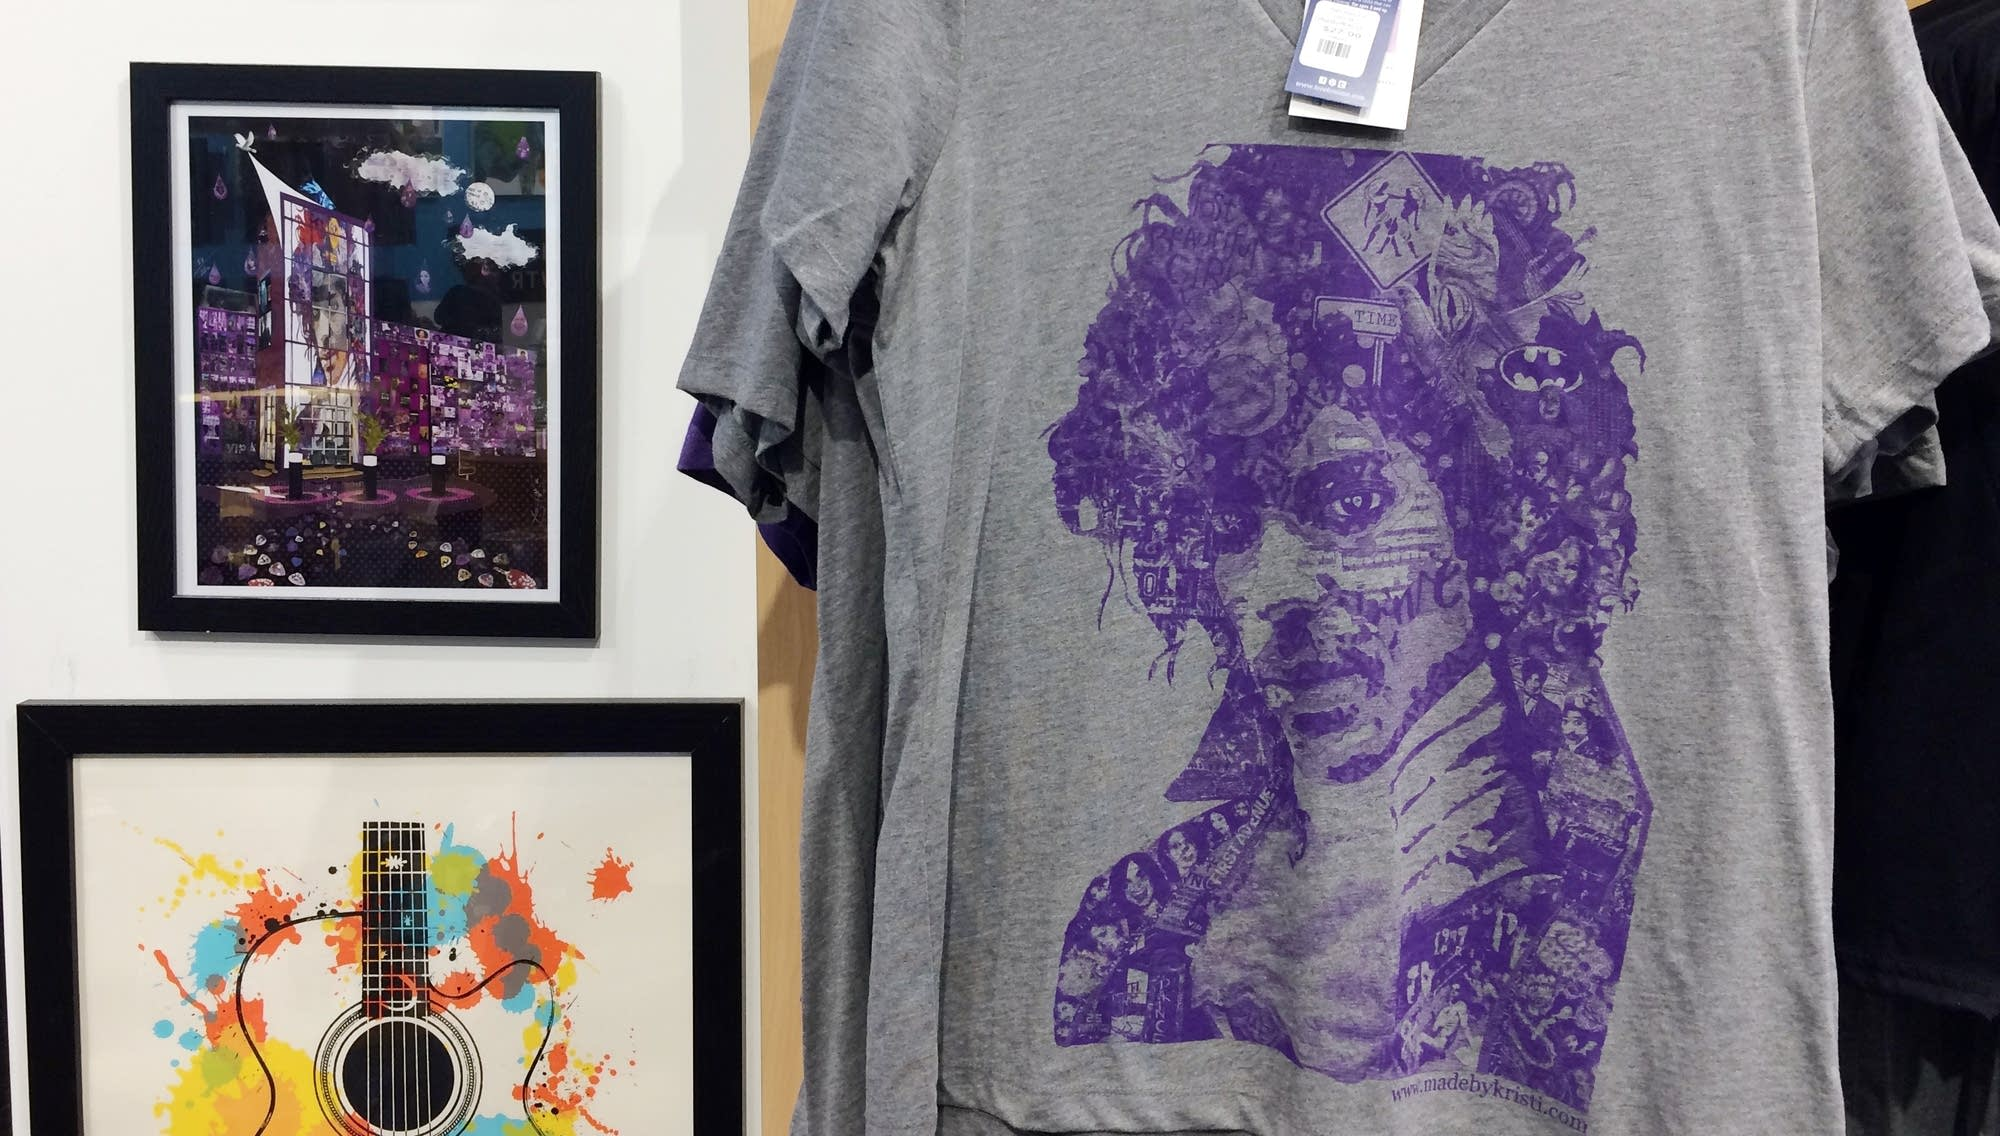 Prince memorabilia for sale at a Mpls. visitor center